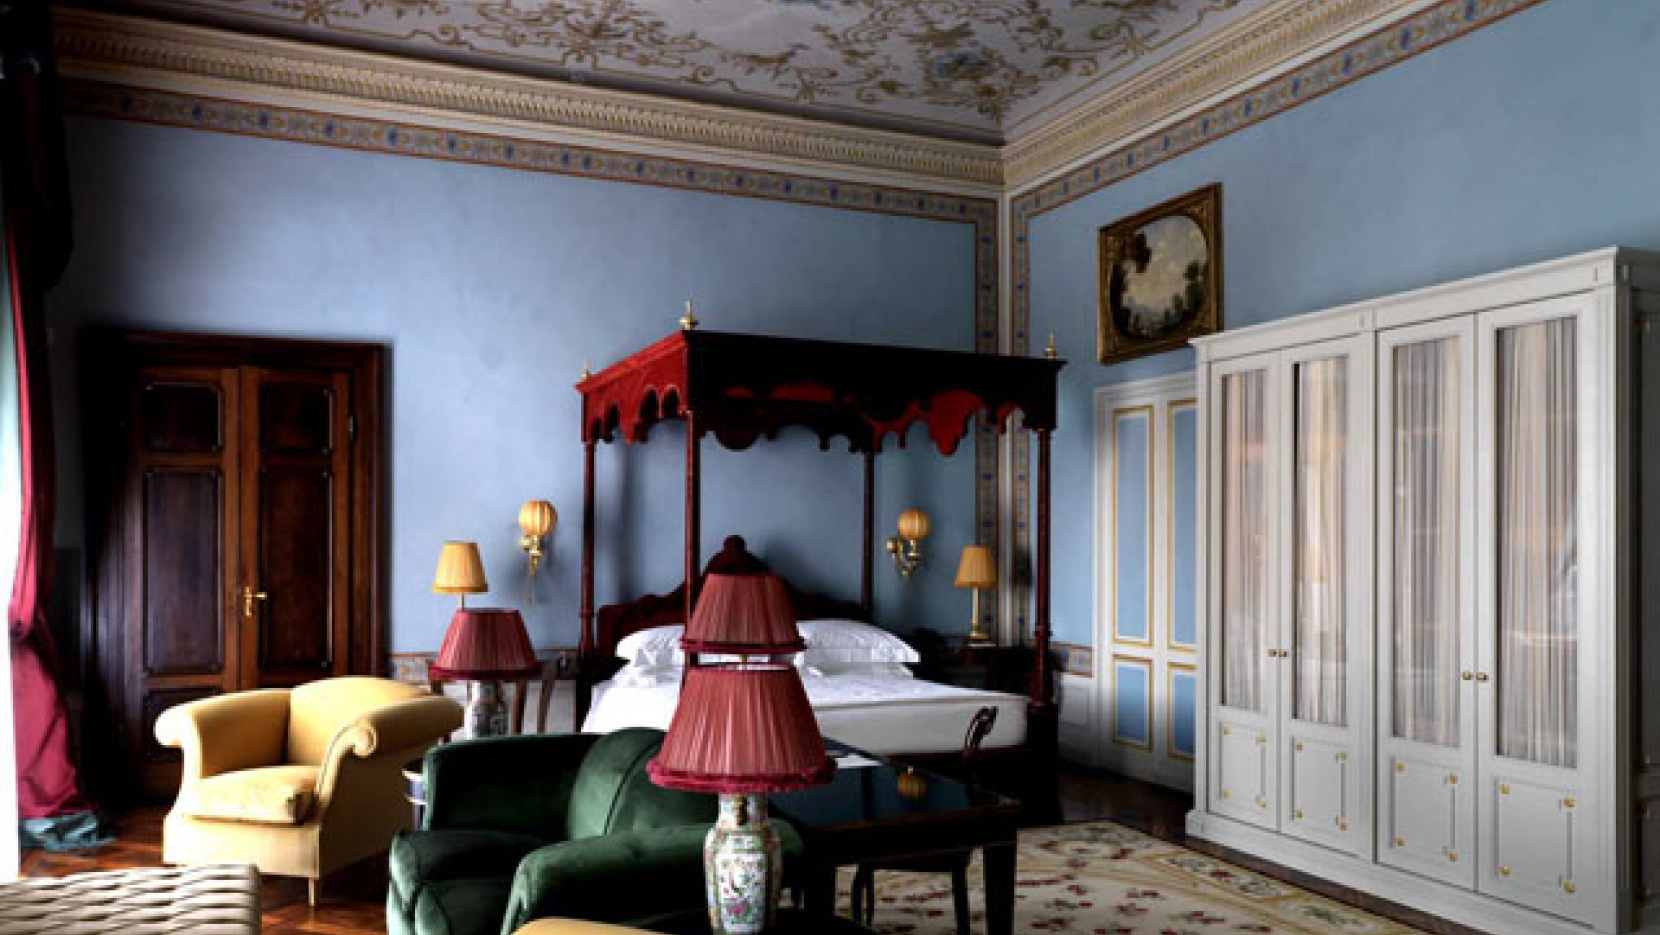 Grand hotel villa cora in florence italy yatzer for Hotel design florence